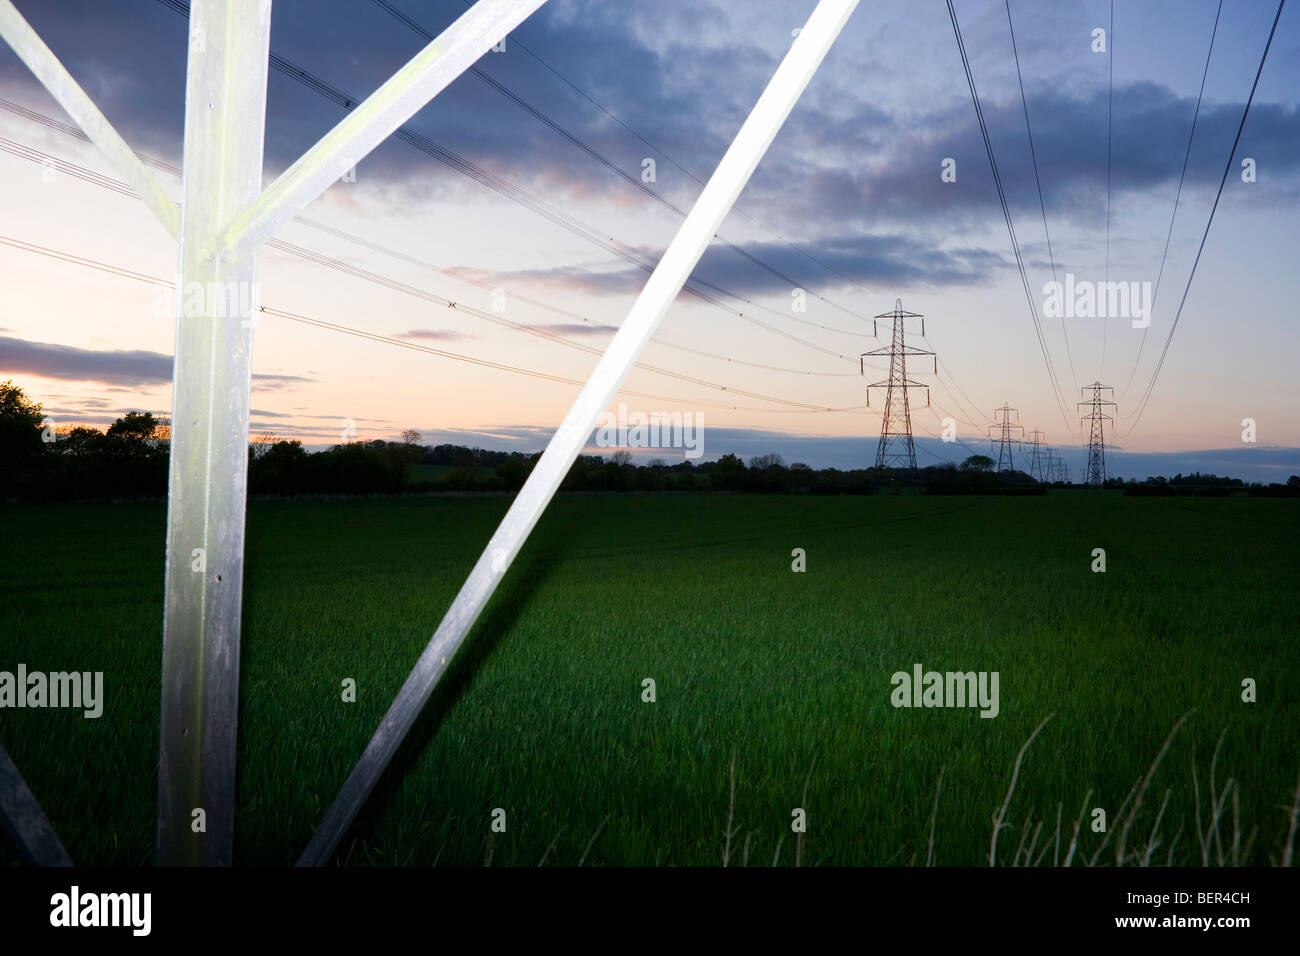 Pylons and power cables 4 - Stock Image